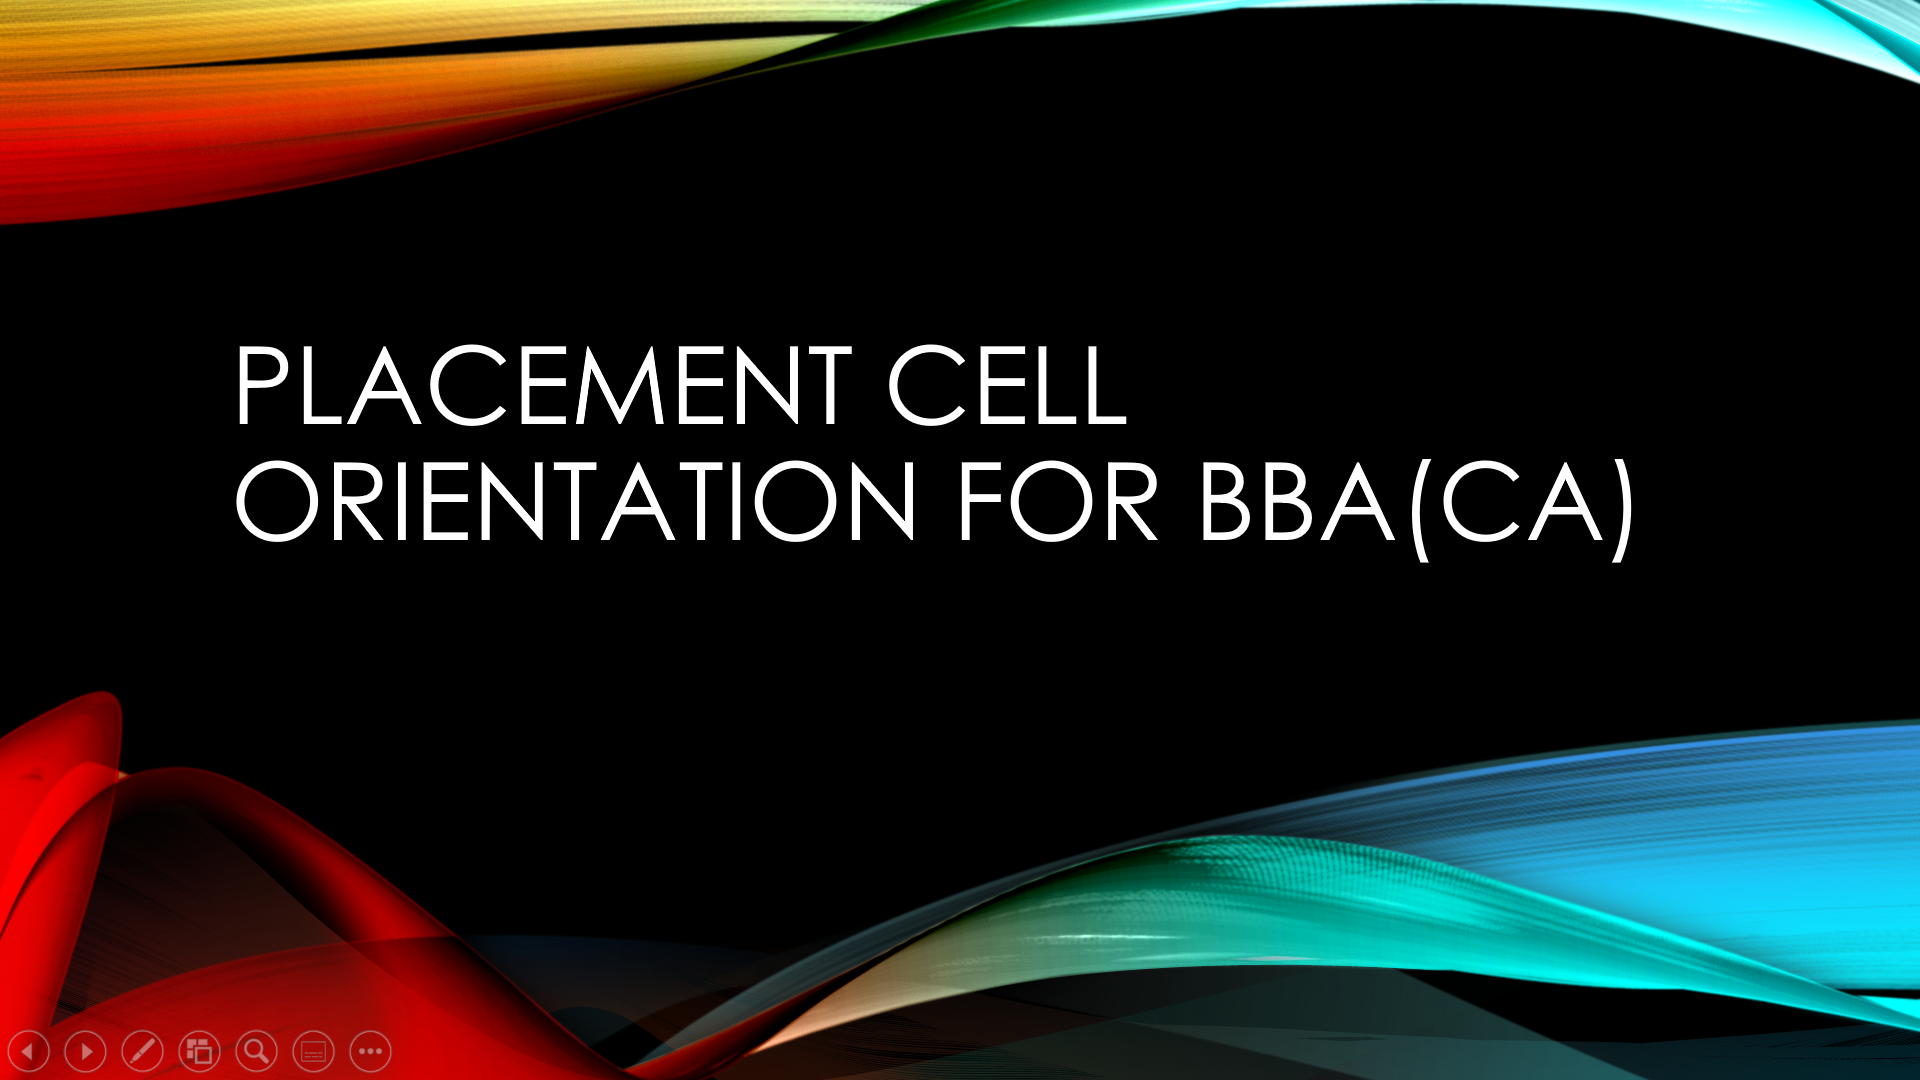 placemnt cell orientation_for BBA(CA)_1